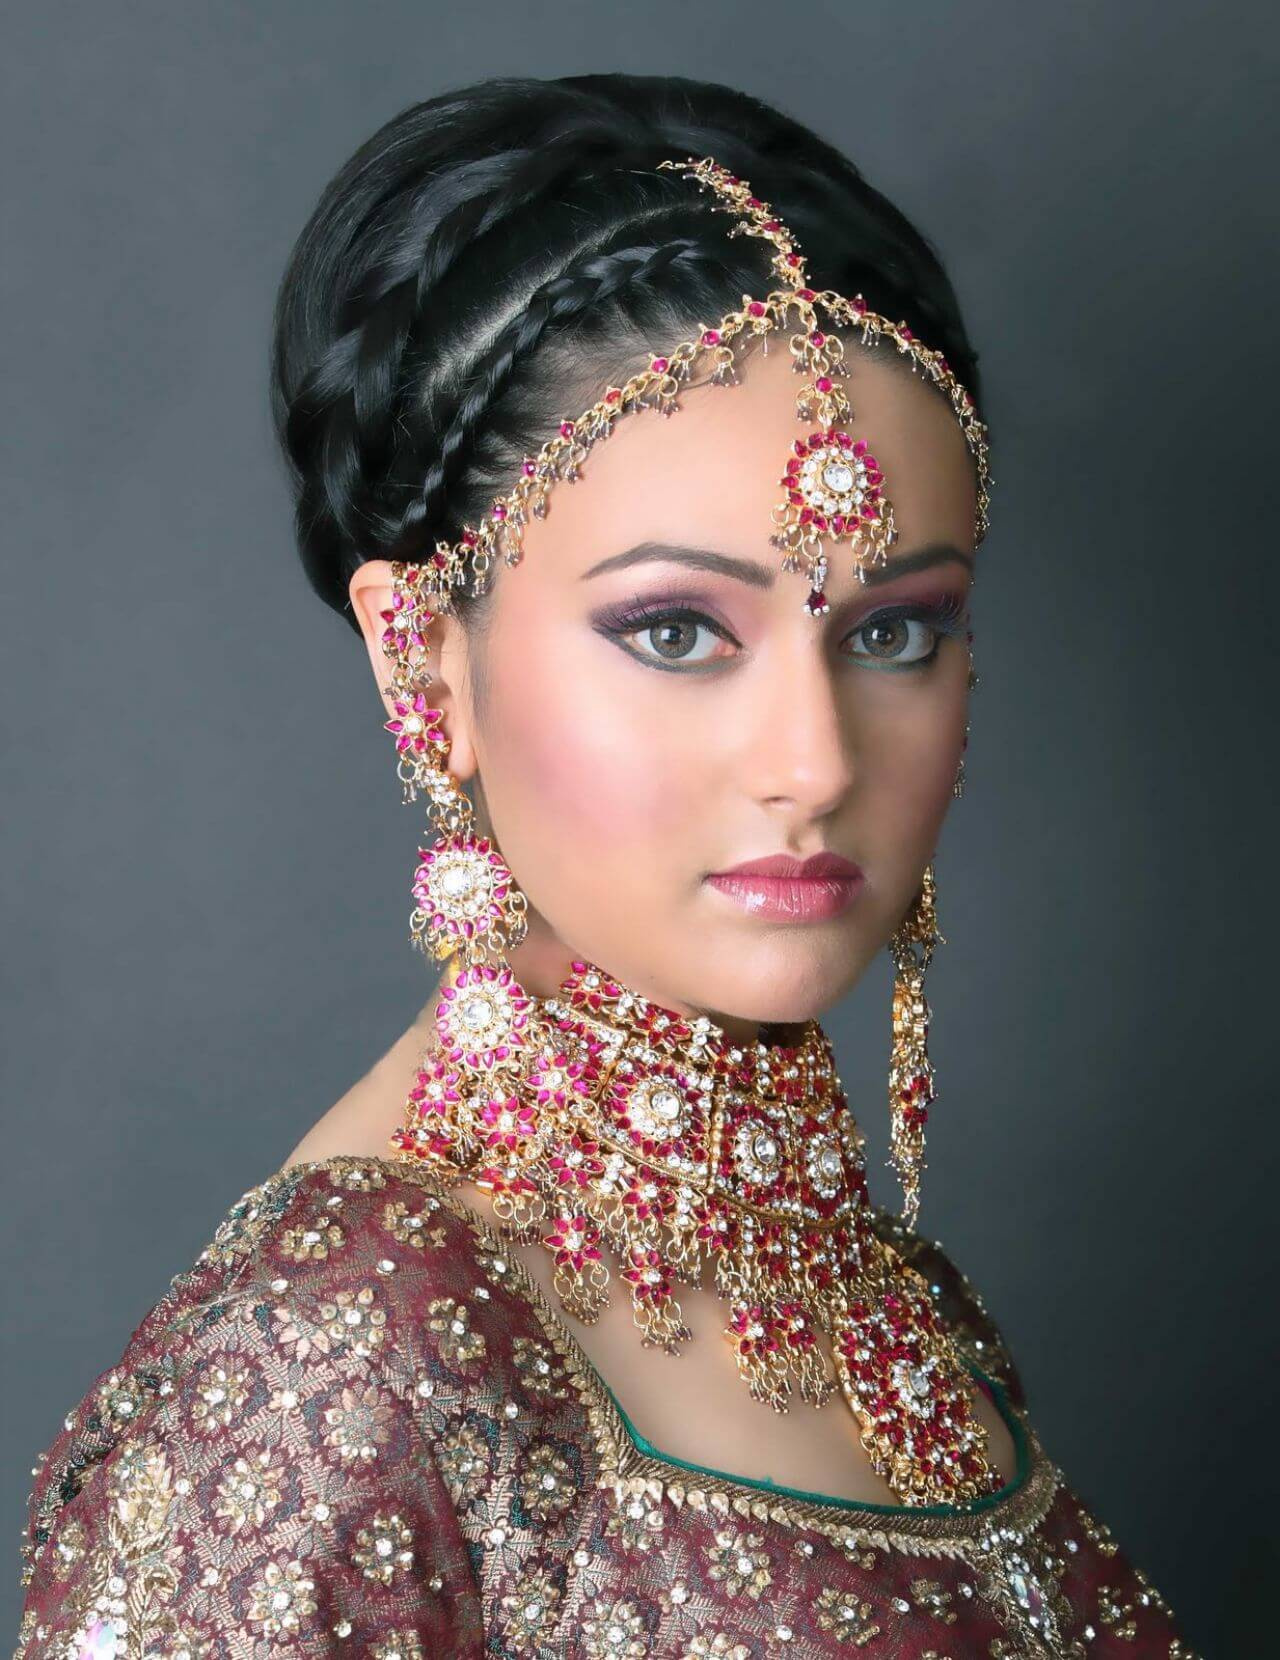 Hairstyles for Short Hair for Indian Wedding   18+